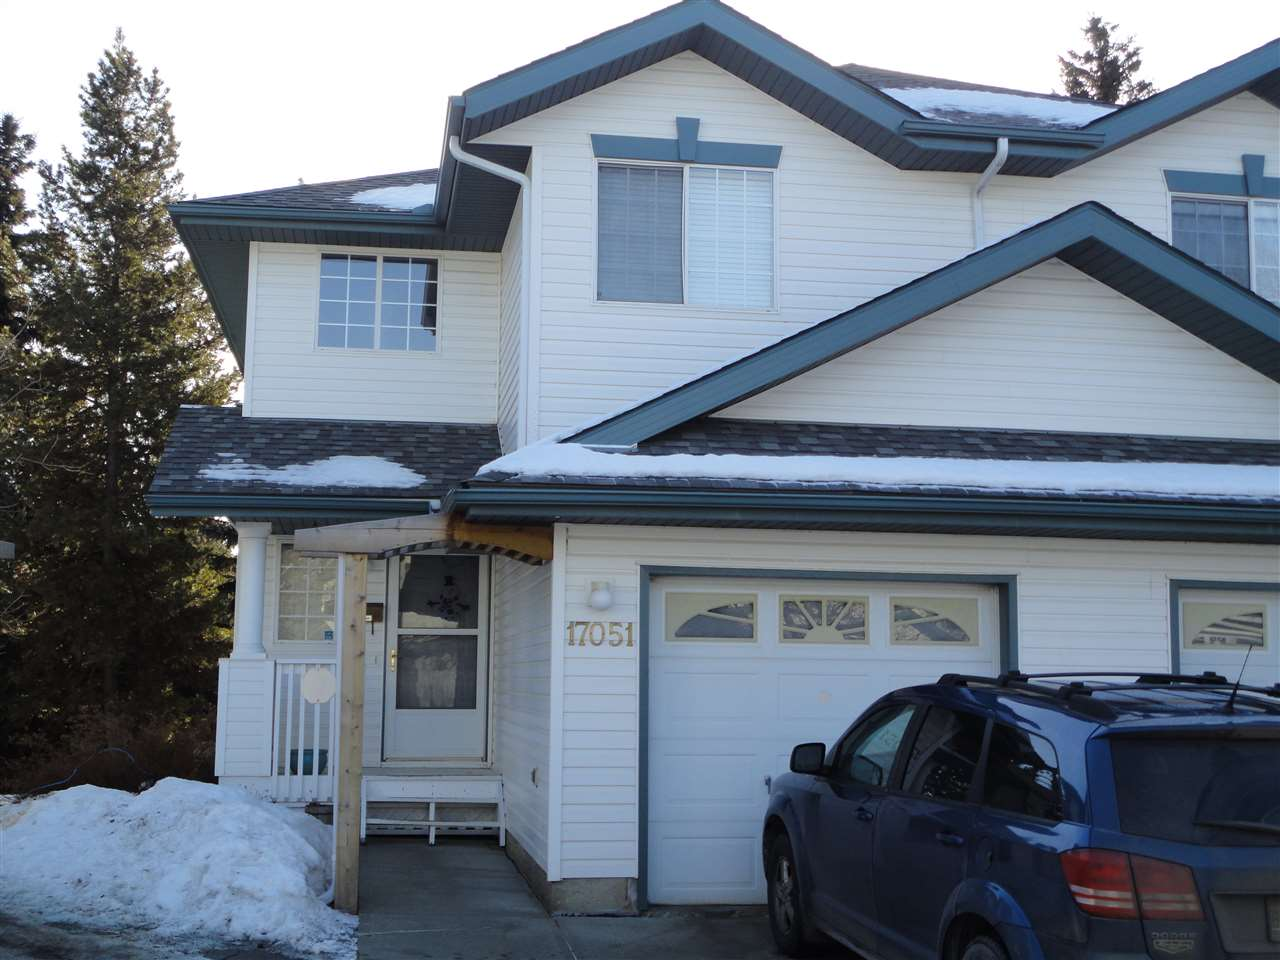 MLS® listing #E4142066 for sale located at 17051 113 Street NW